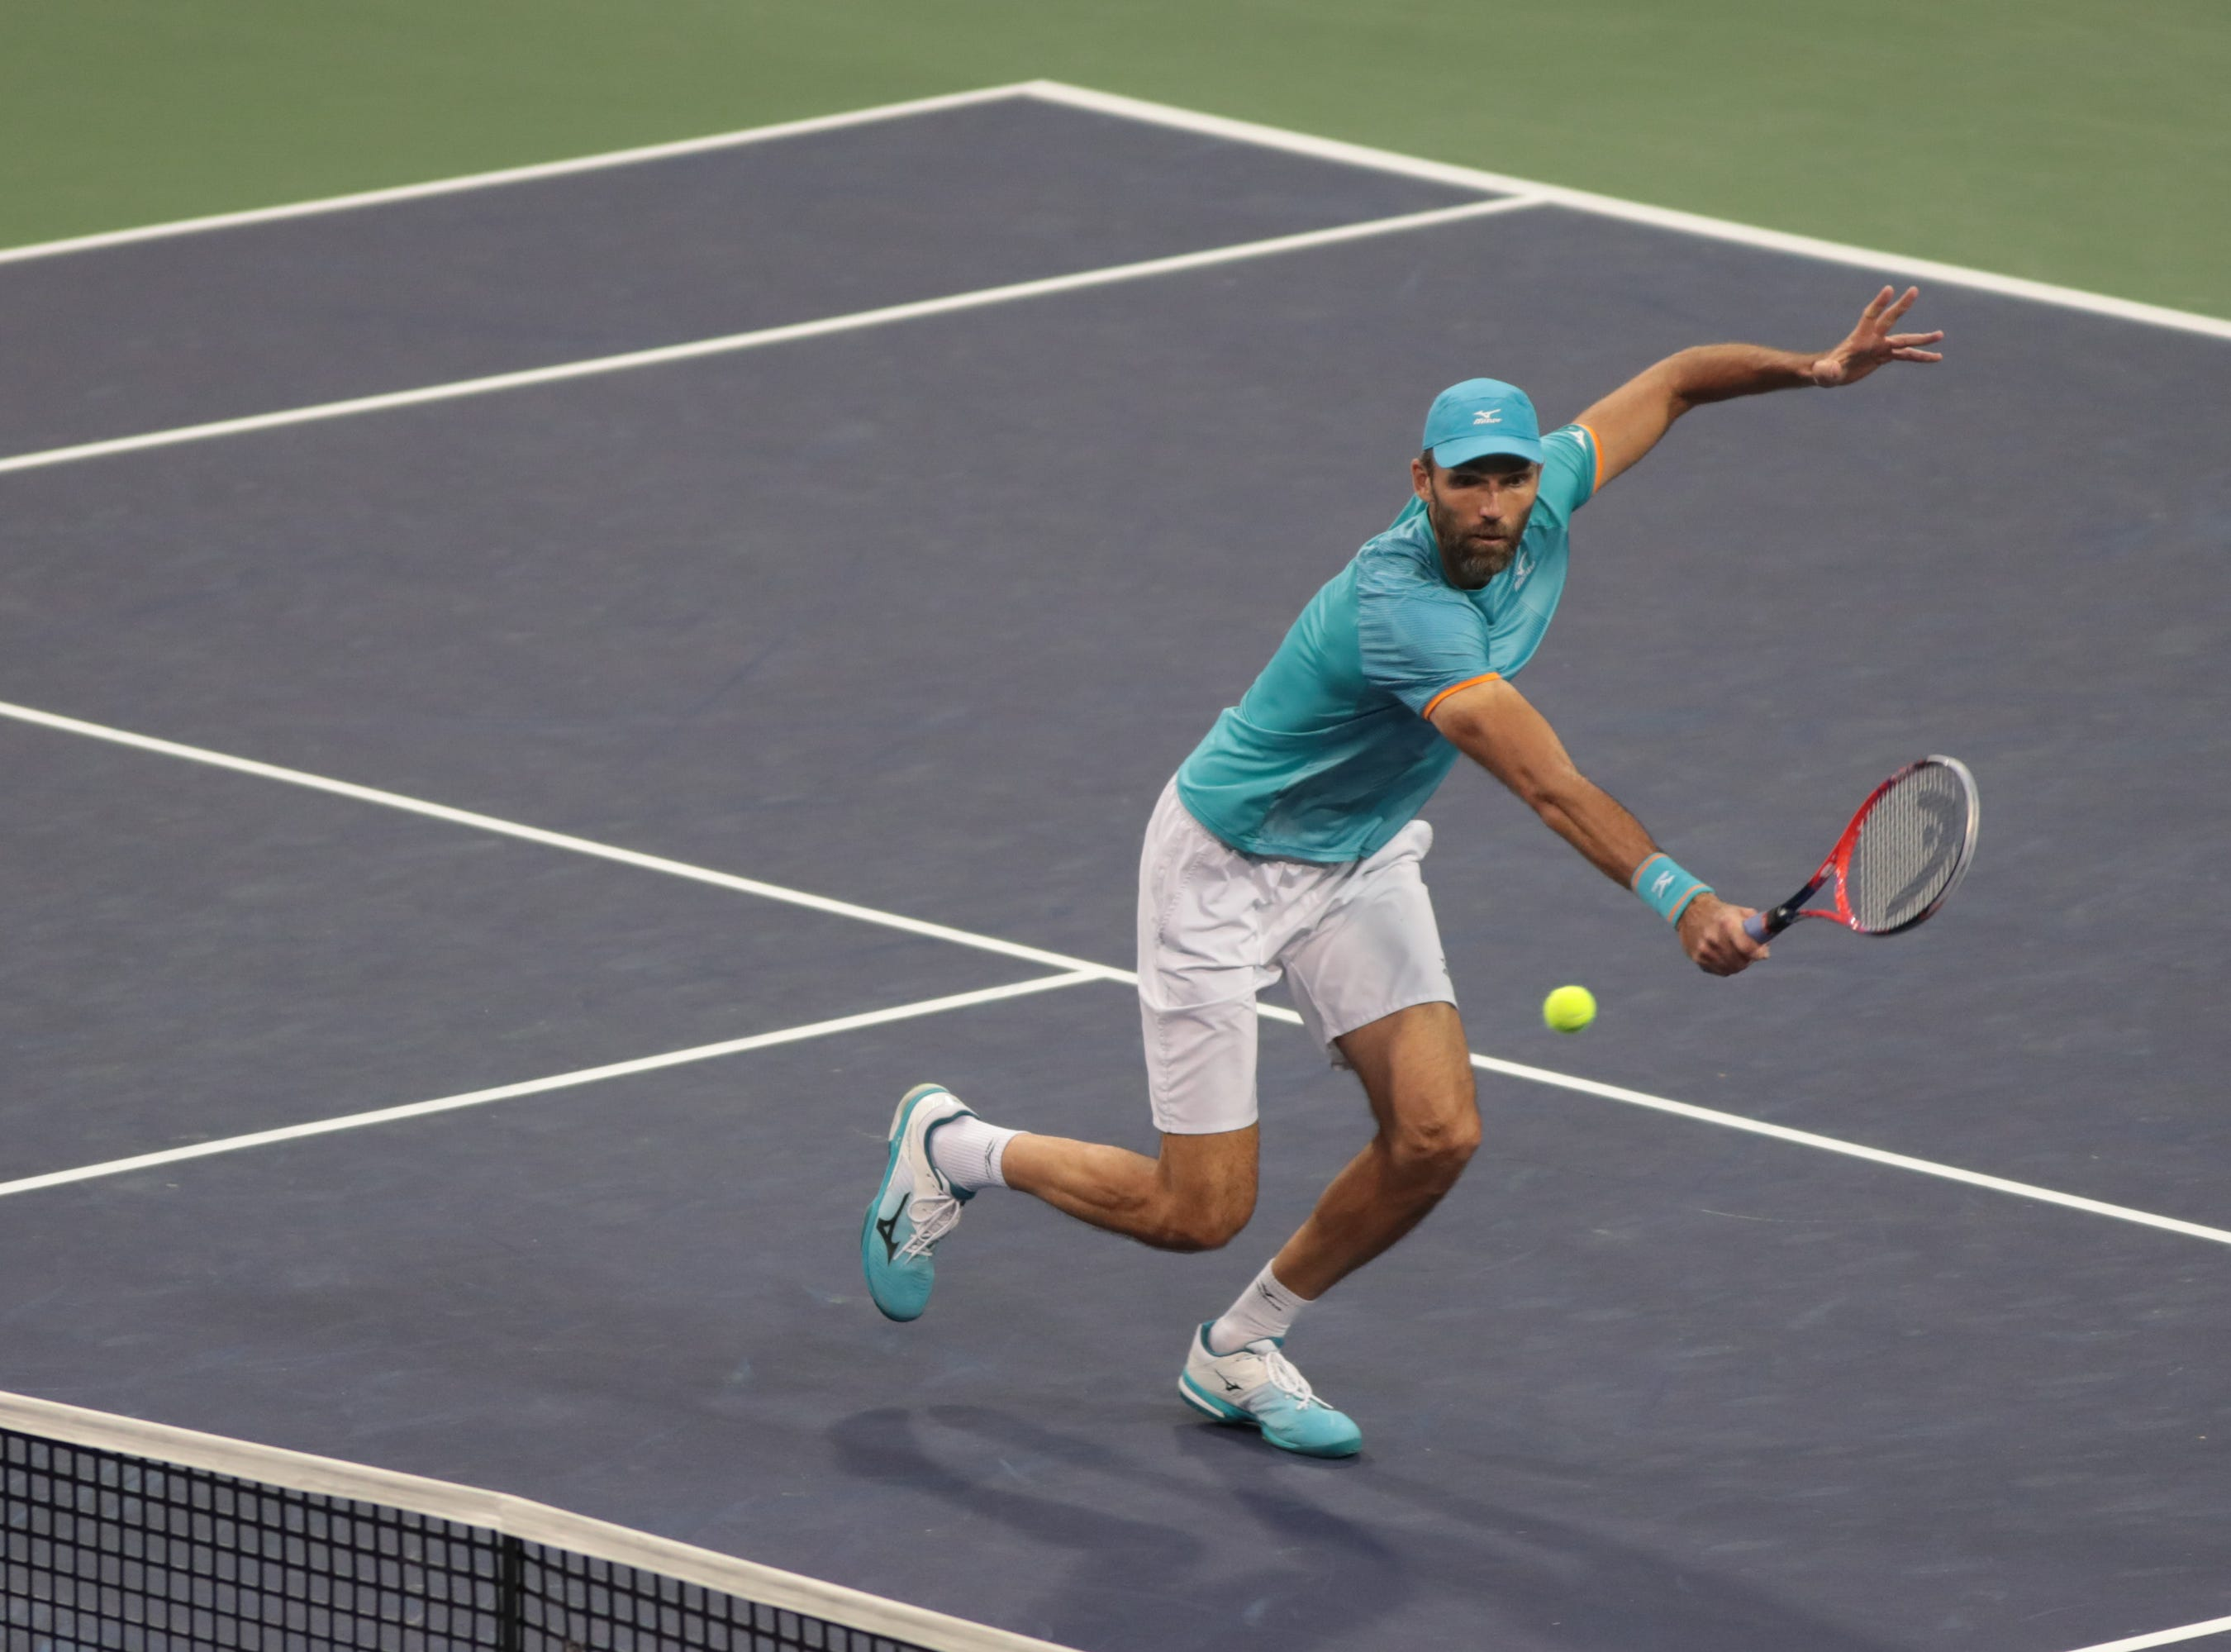 Ivo Karlovic volleys to Dominc Thiem at the BNP Paribas Open in Indian Wells, Calif., March 13, 2019. At 40, Karlovic was the